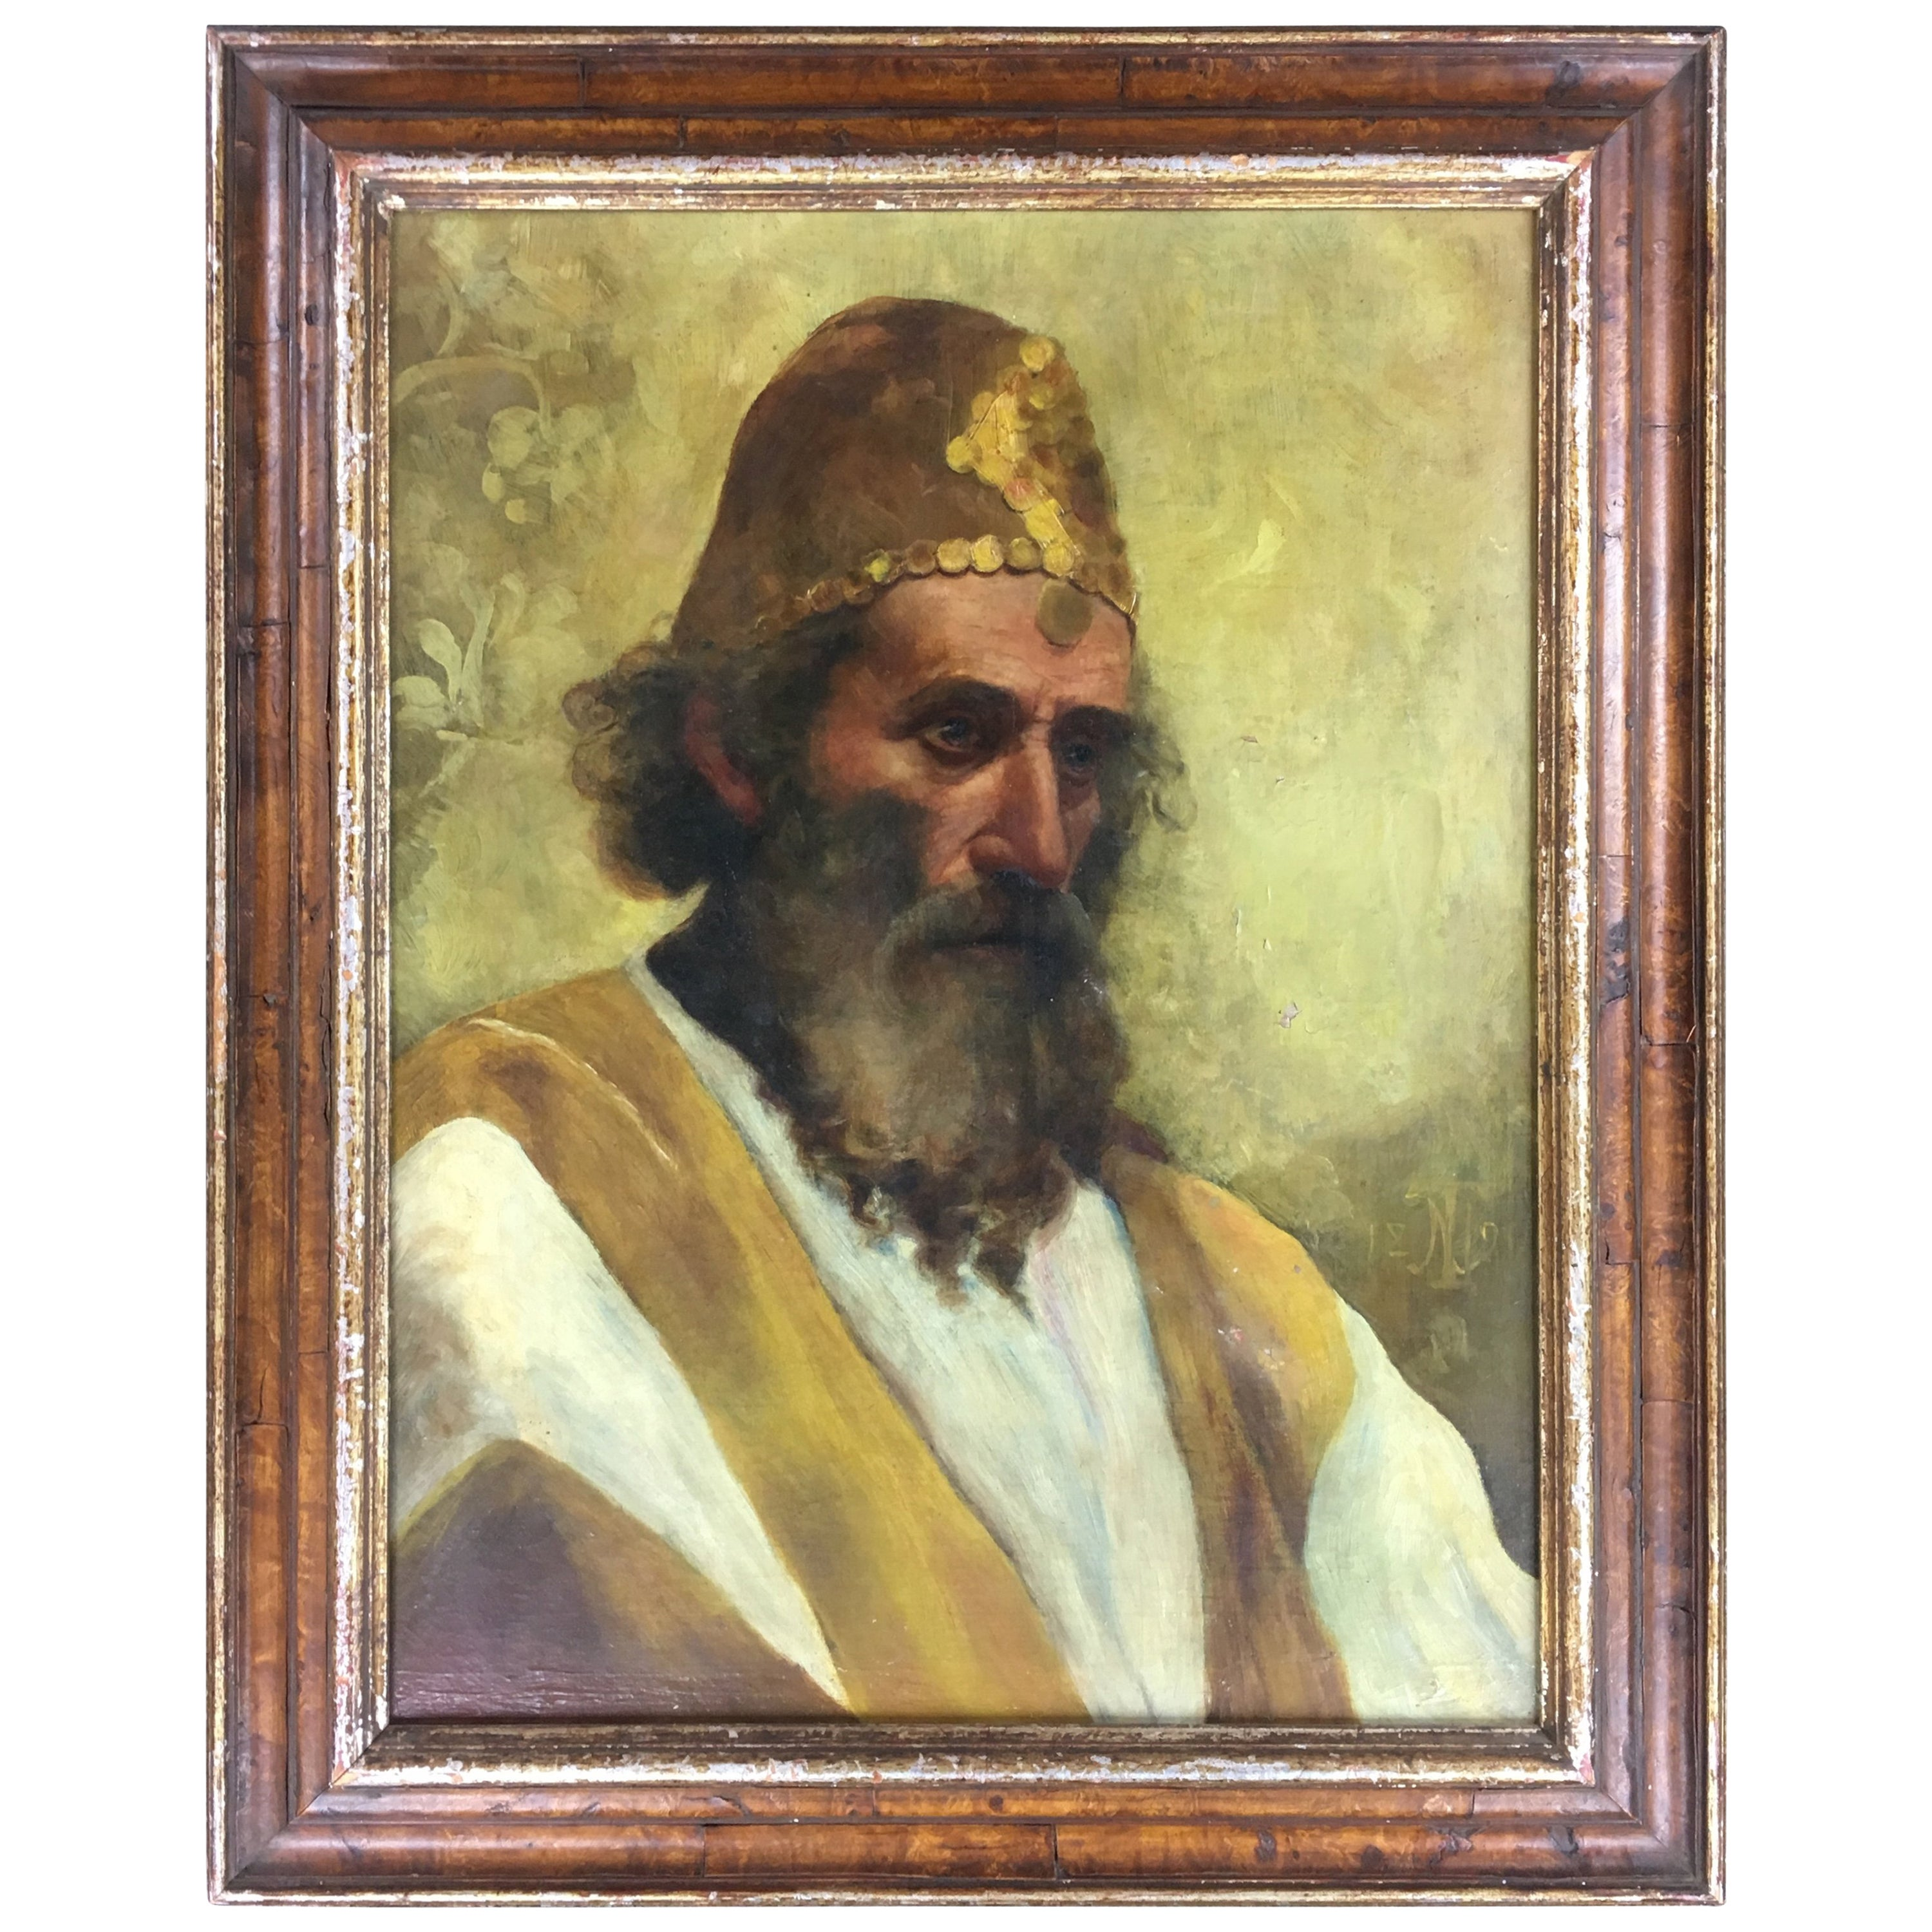 Original 19th Century Oil on Canvas Painting of a Holy Man, Prophet